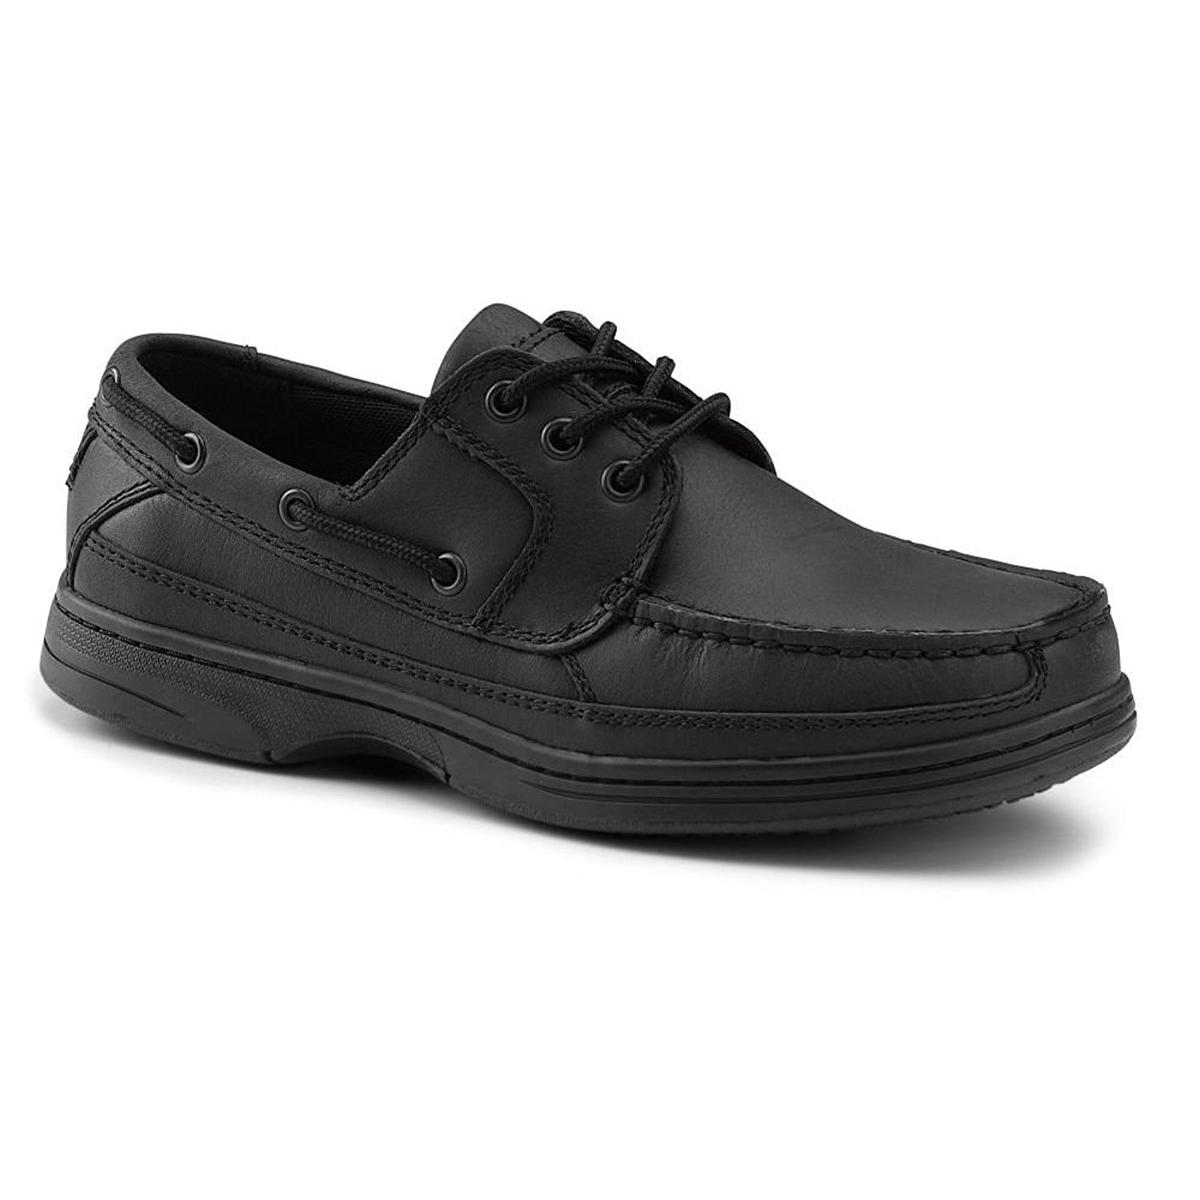 Dockers Pier Mens Black Boat Shoes by Dockers